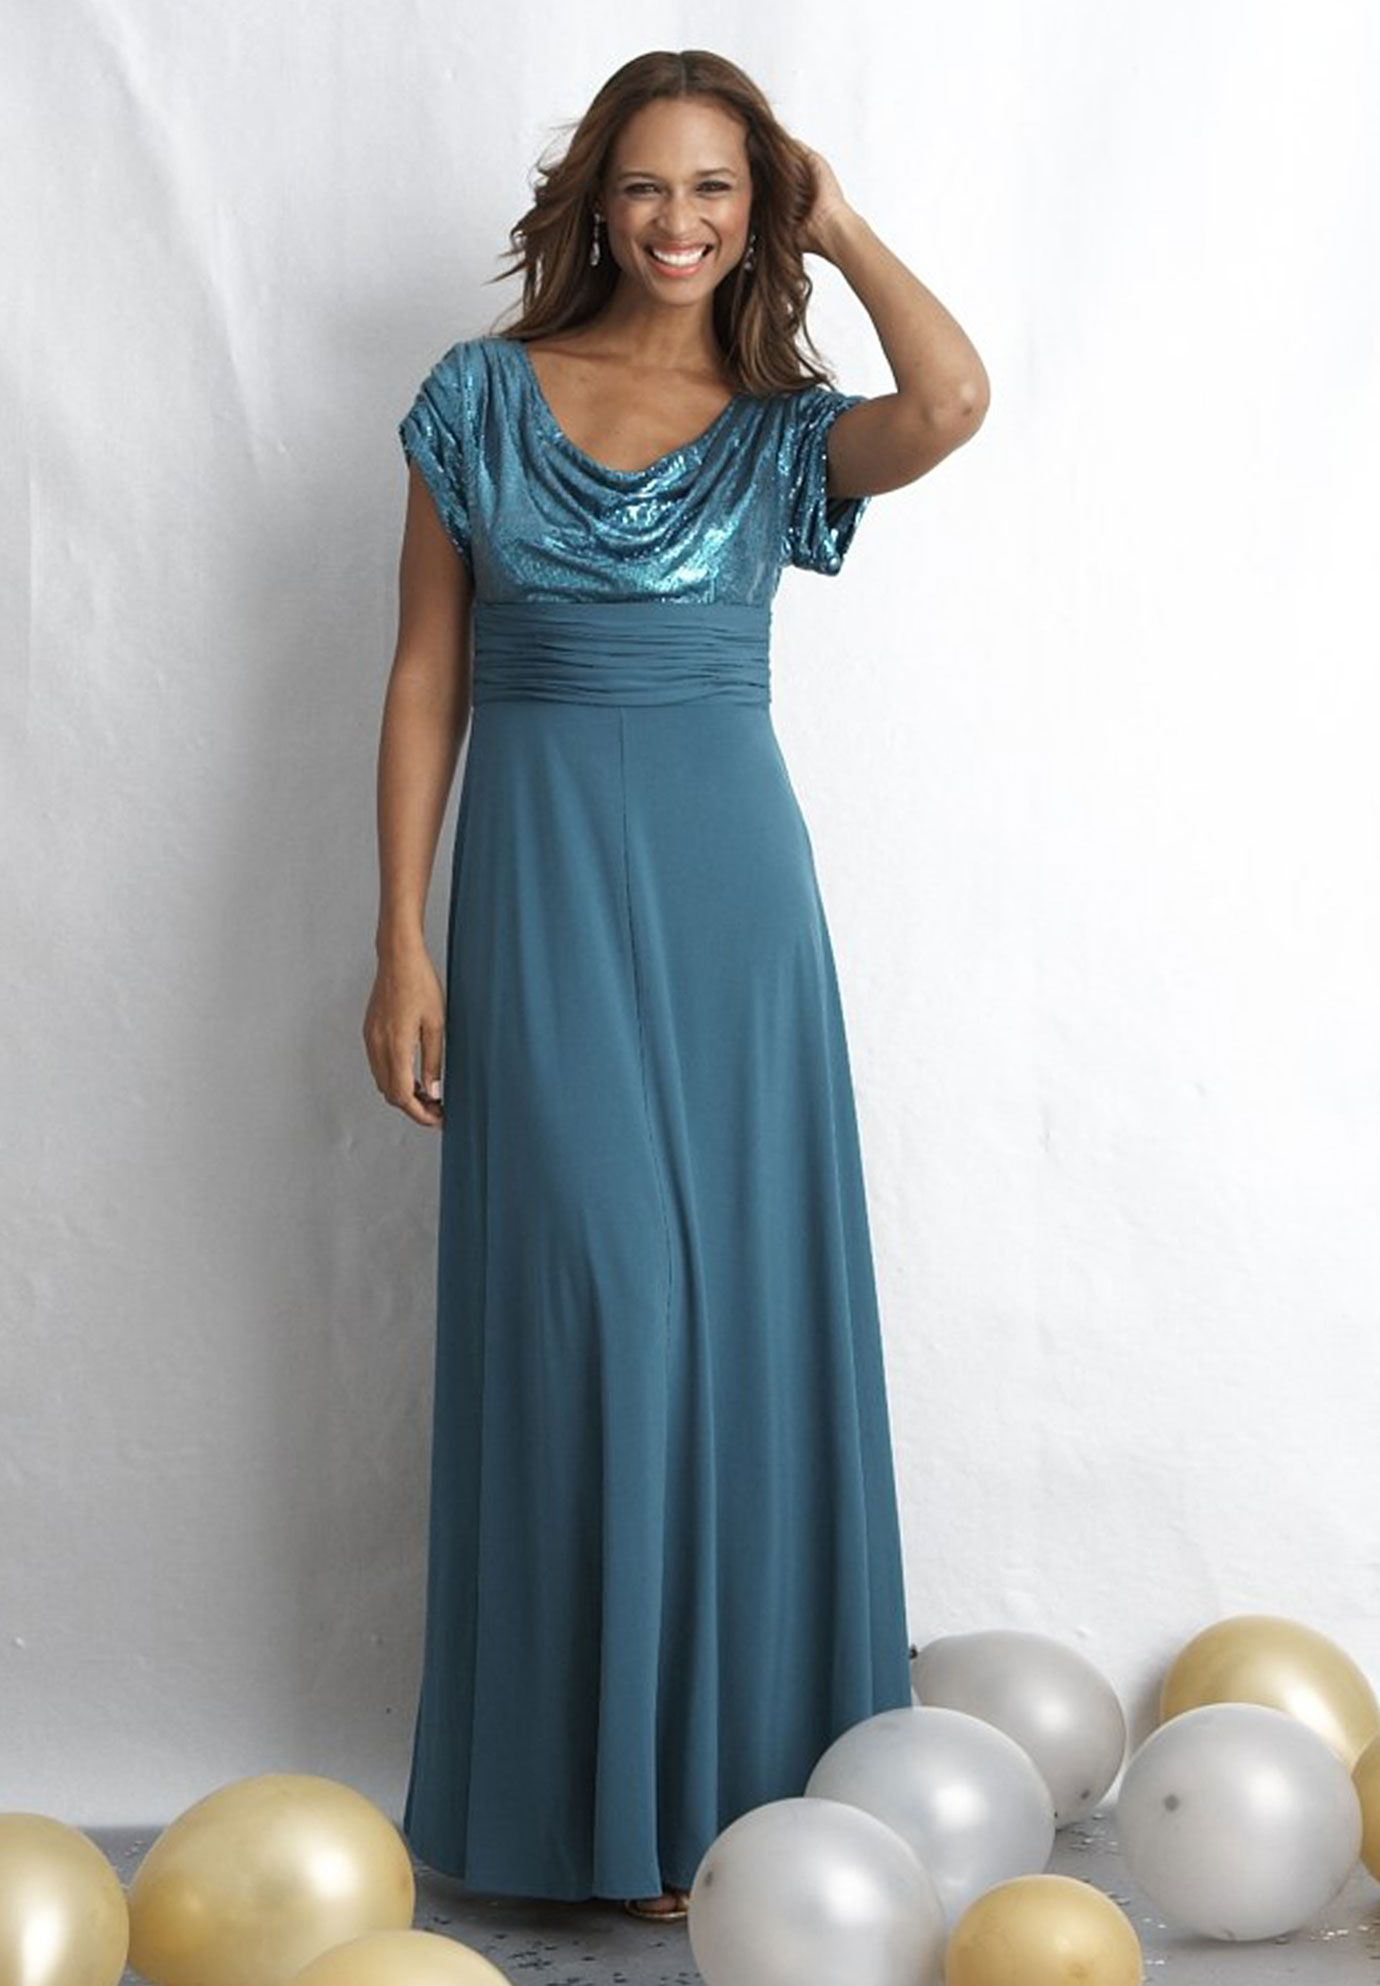 Outlet Gown with Sequins by One Stop Plus | Dresses | Pinterest ...